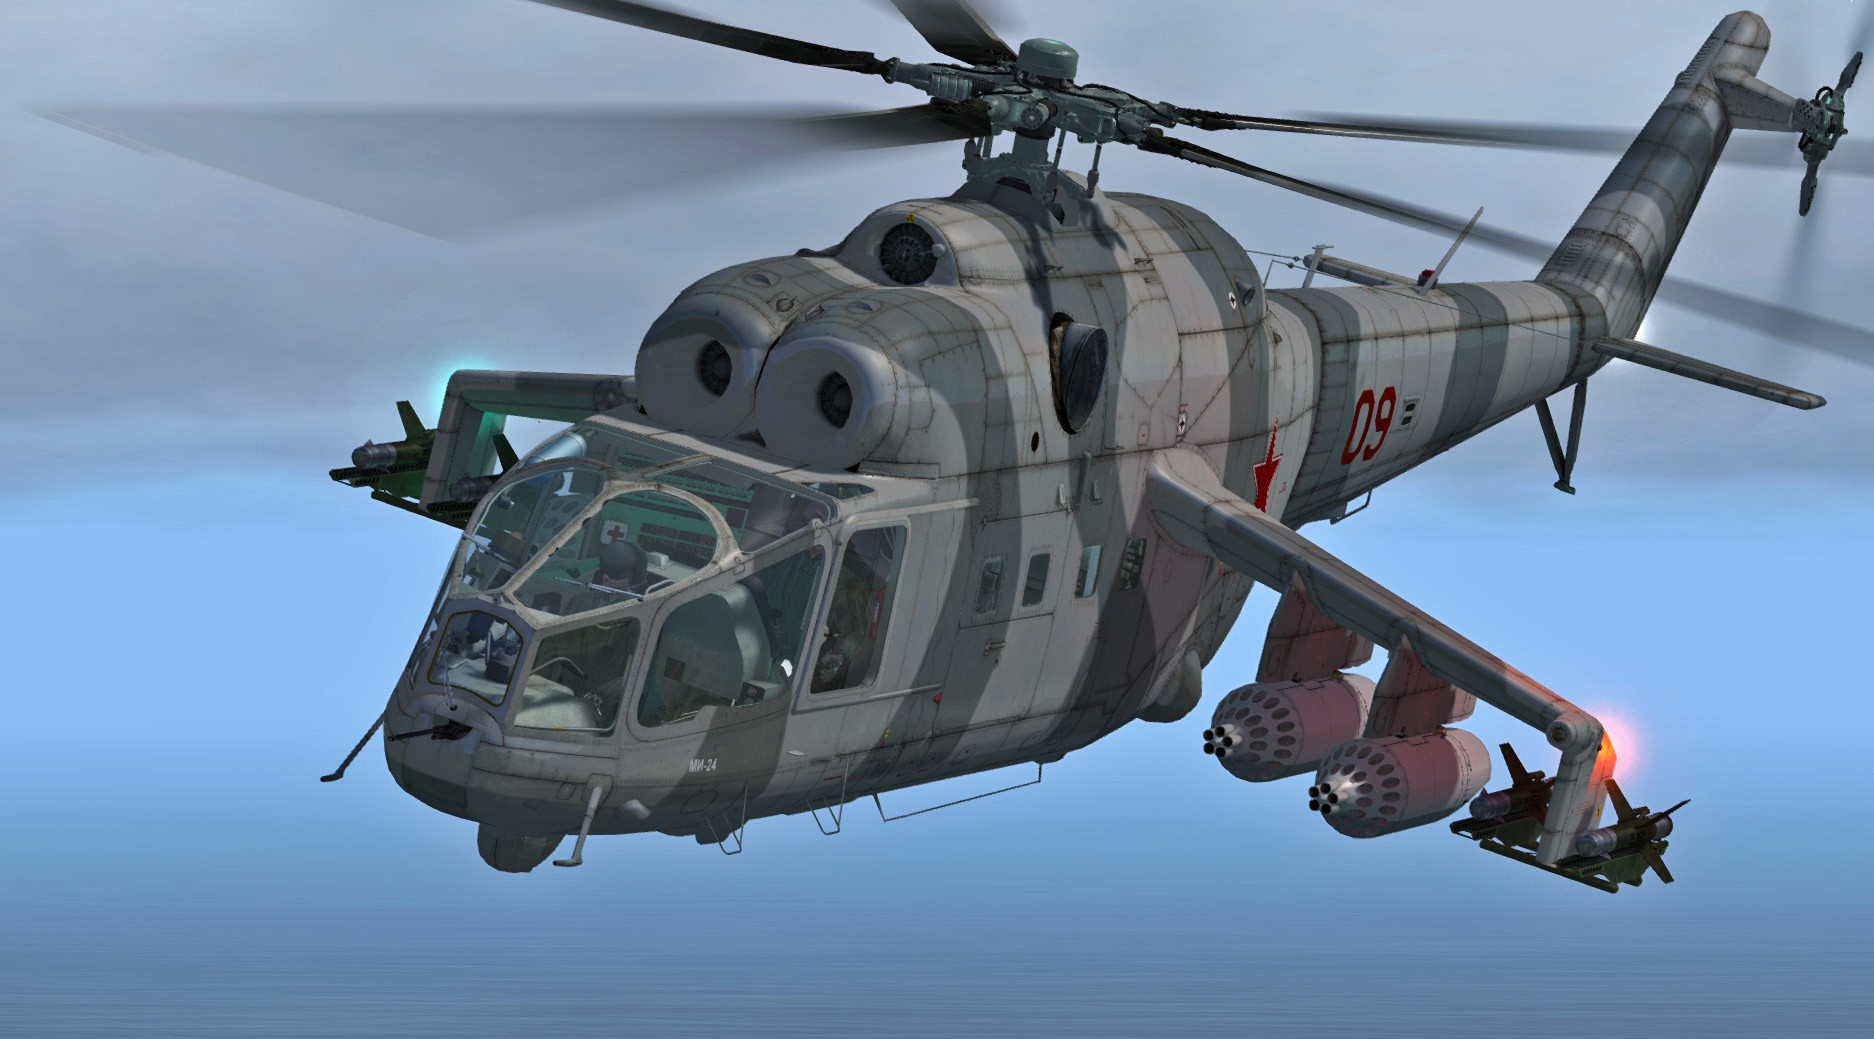 P3dv4 Helicopters